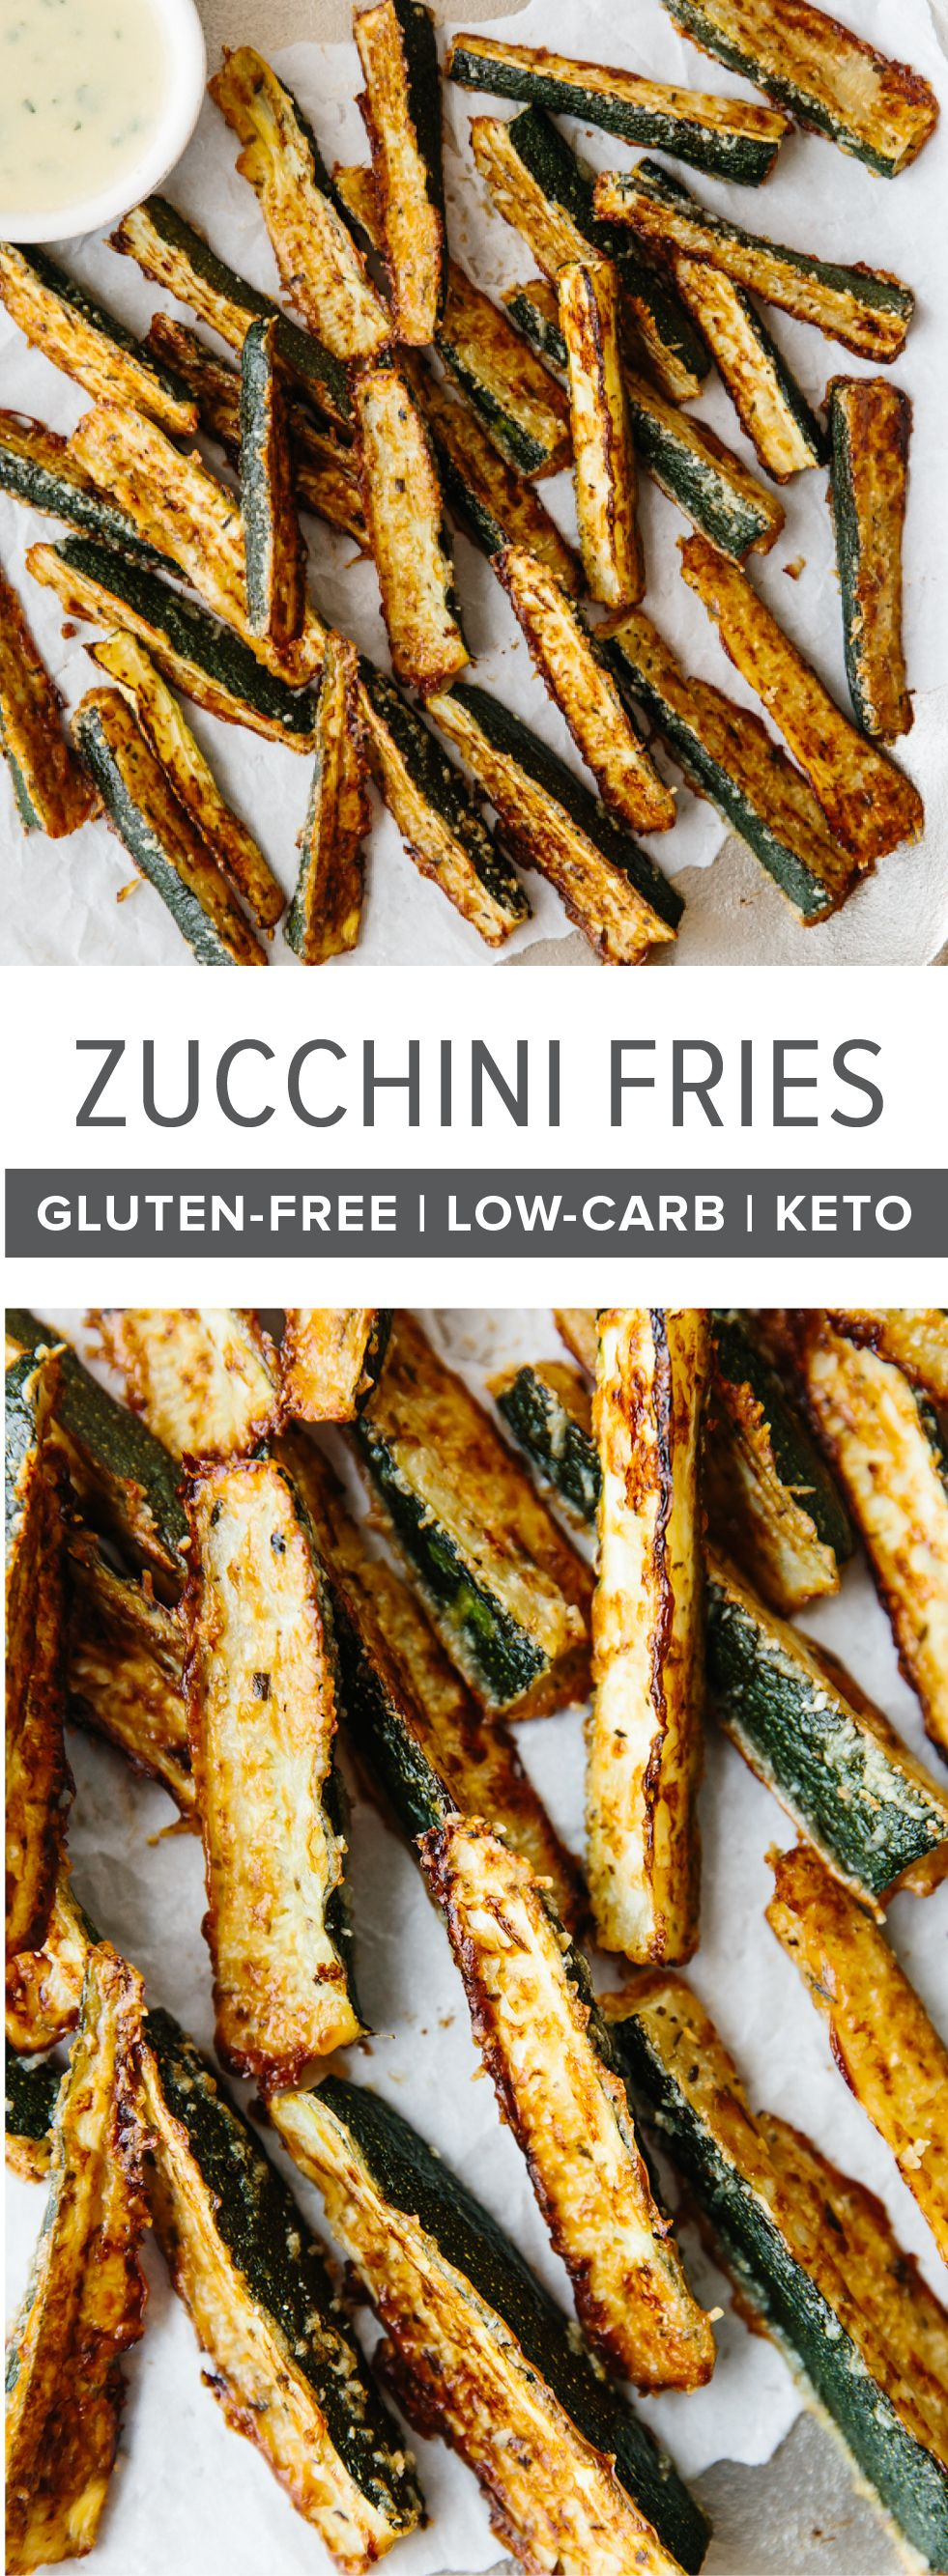 Photo of Baked Zucchini Fries